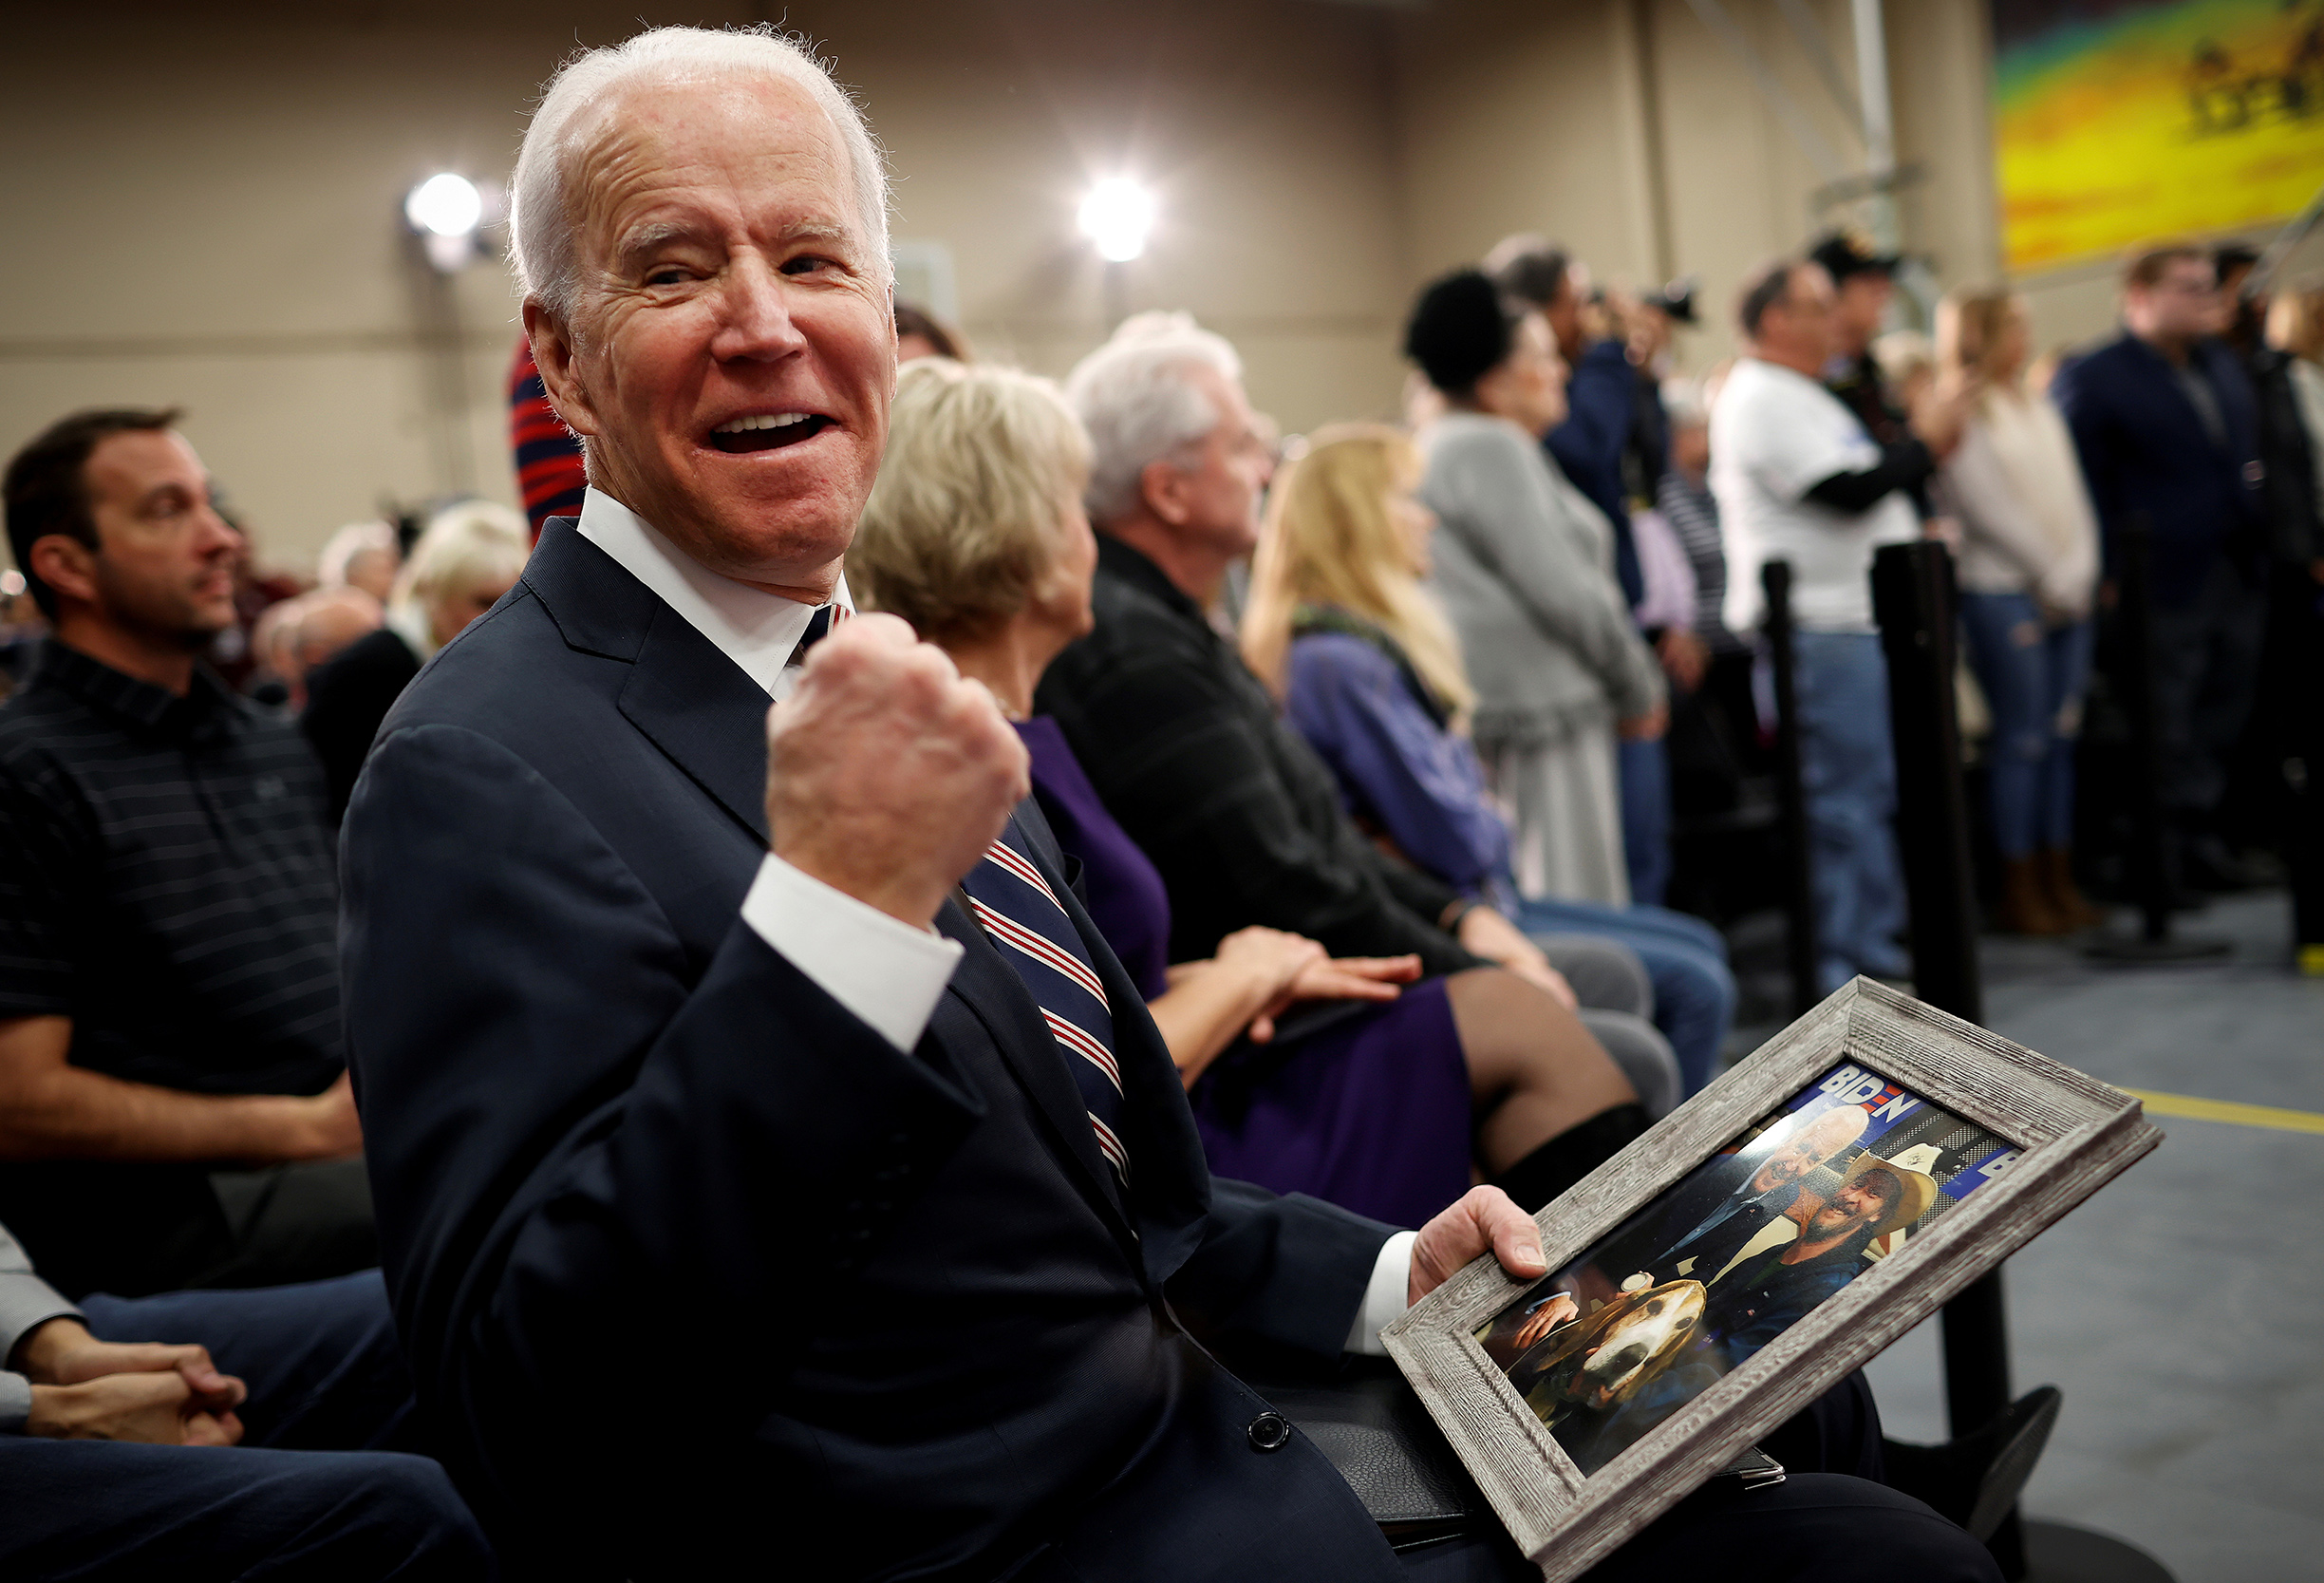 DATE IMPORTED:January 30, 2020Democratic 2020 U.S. presidential candidate and former Vice President Joe Biden gestures as he sits after speaking during a campaign event in Waukee, Iowa, U.S., January 30, 2020. Mike Segar /REUTERS